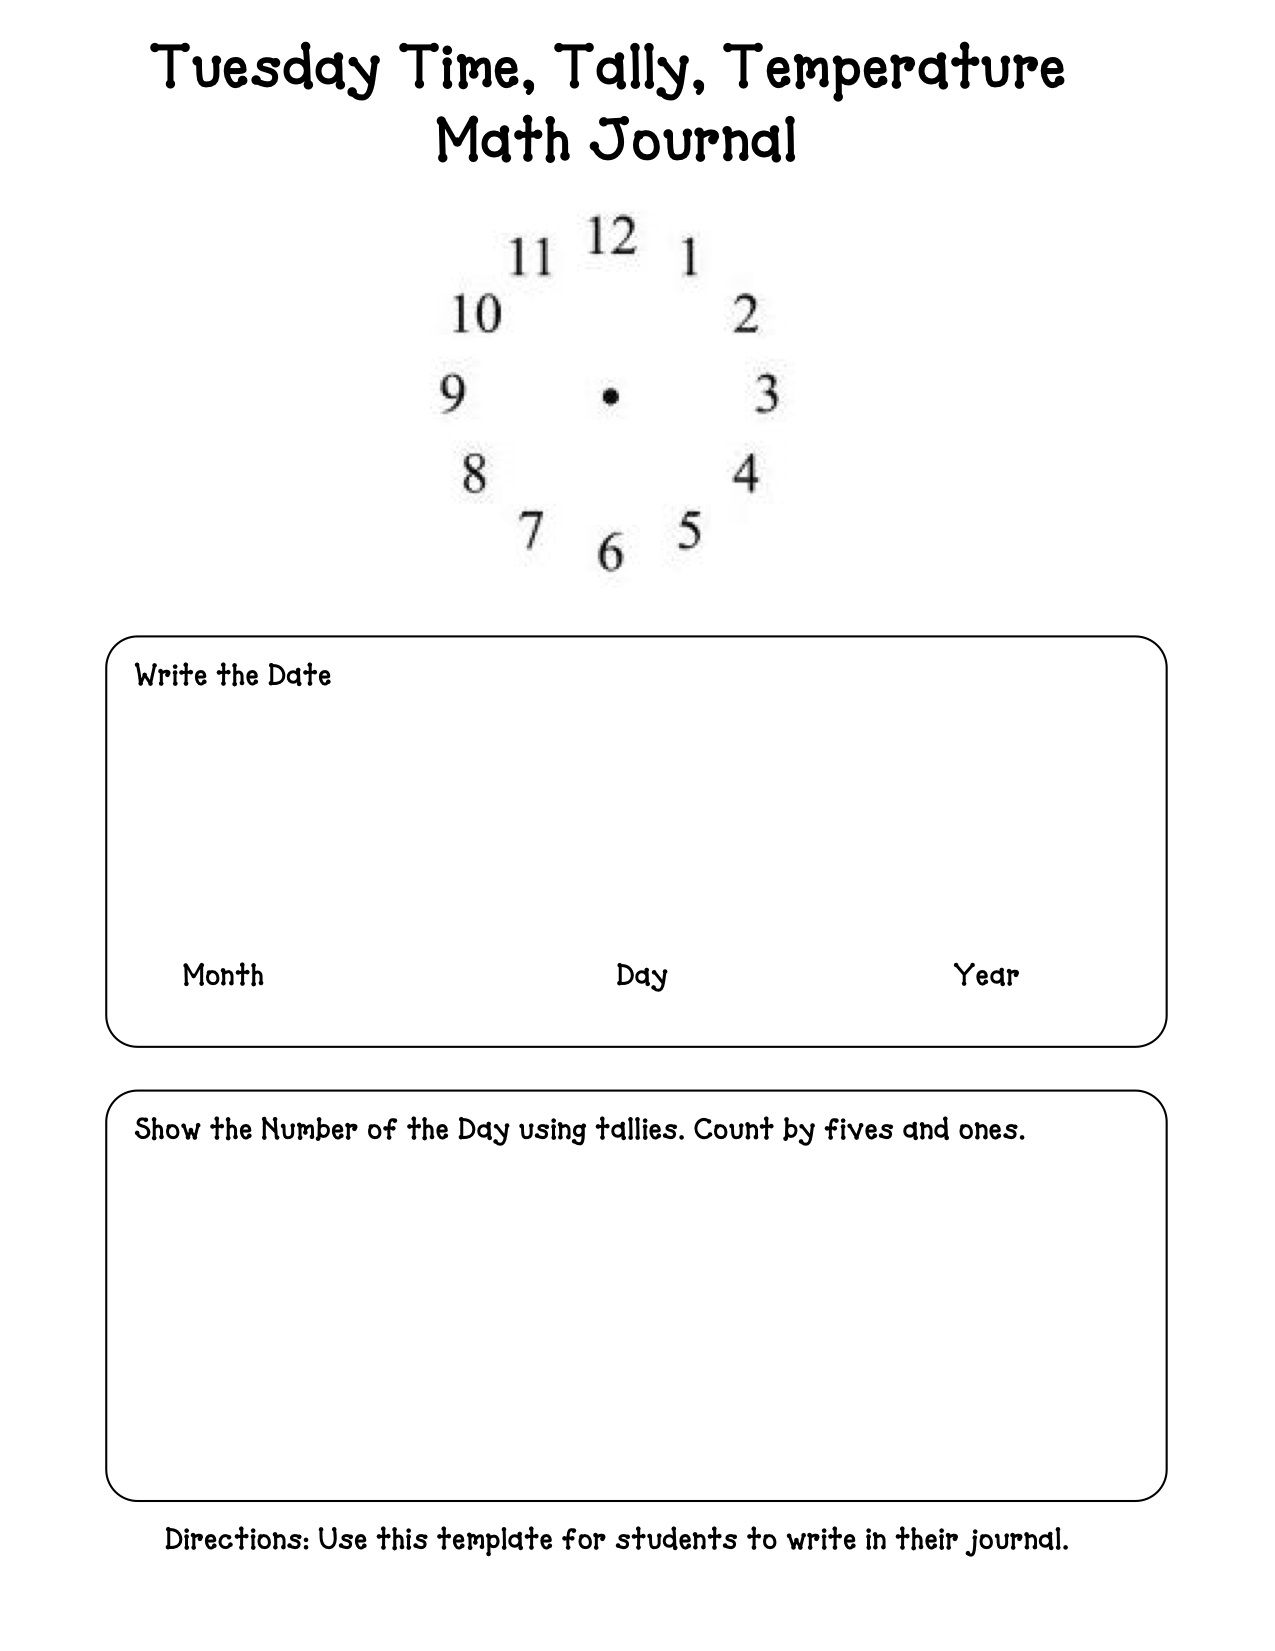 Tuesday Time Tally Temperature Math Journal Template